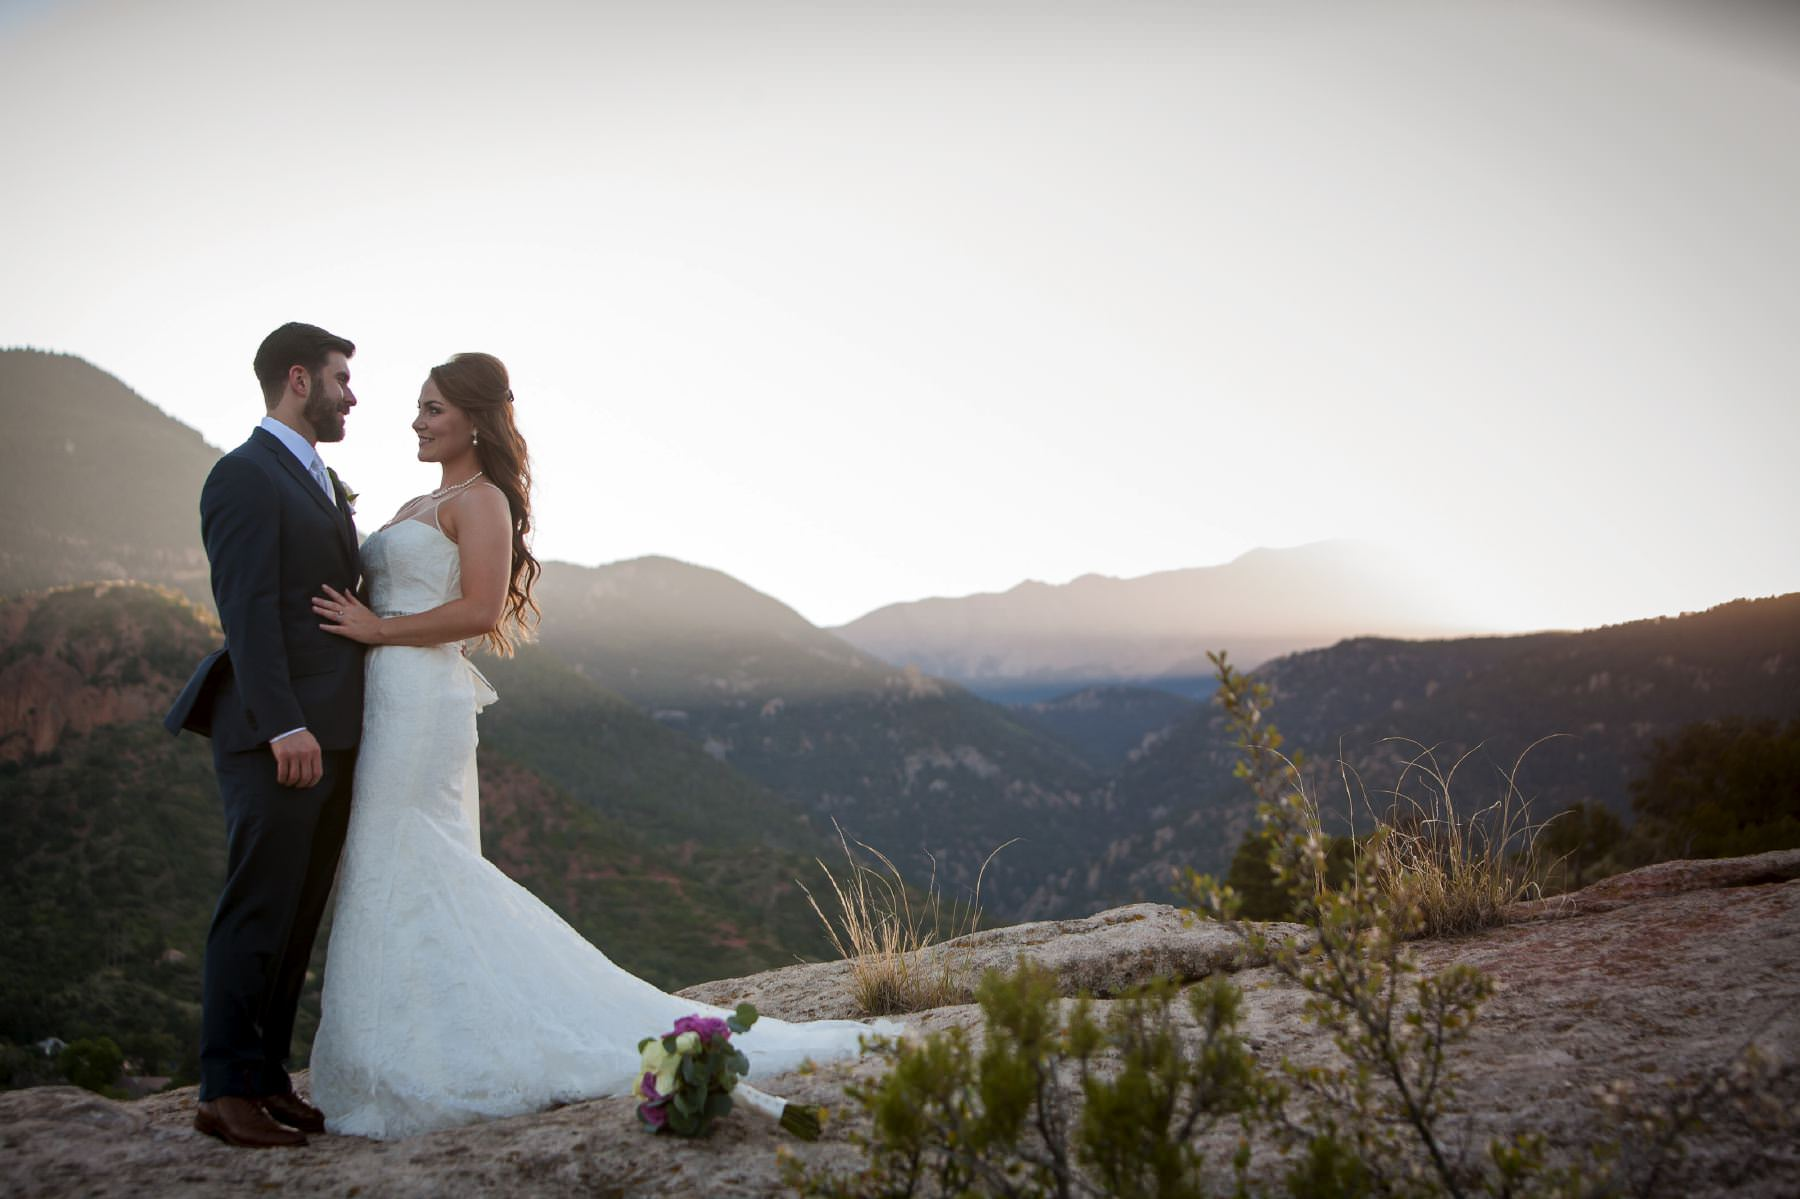 Bride and groom standing on rock with Pikes Peak in the background at sunset.